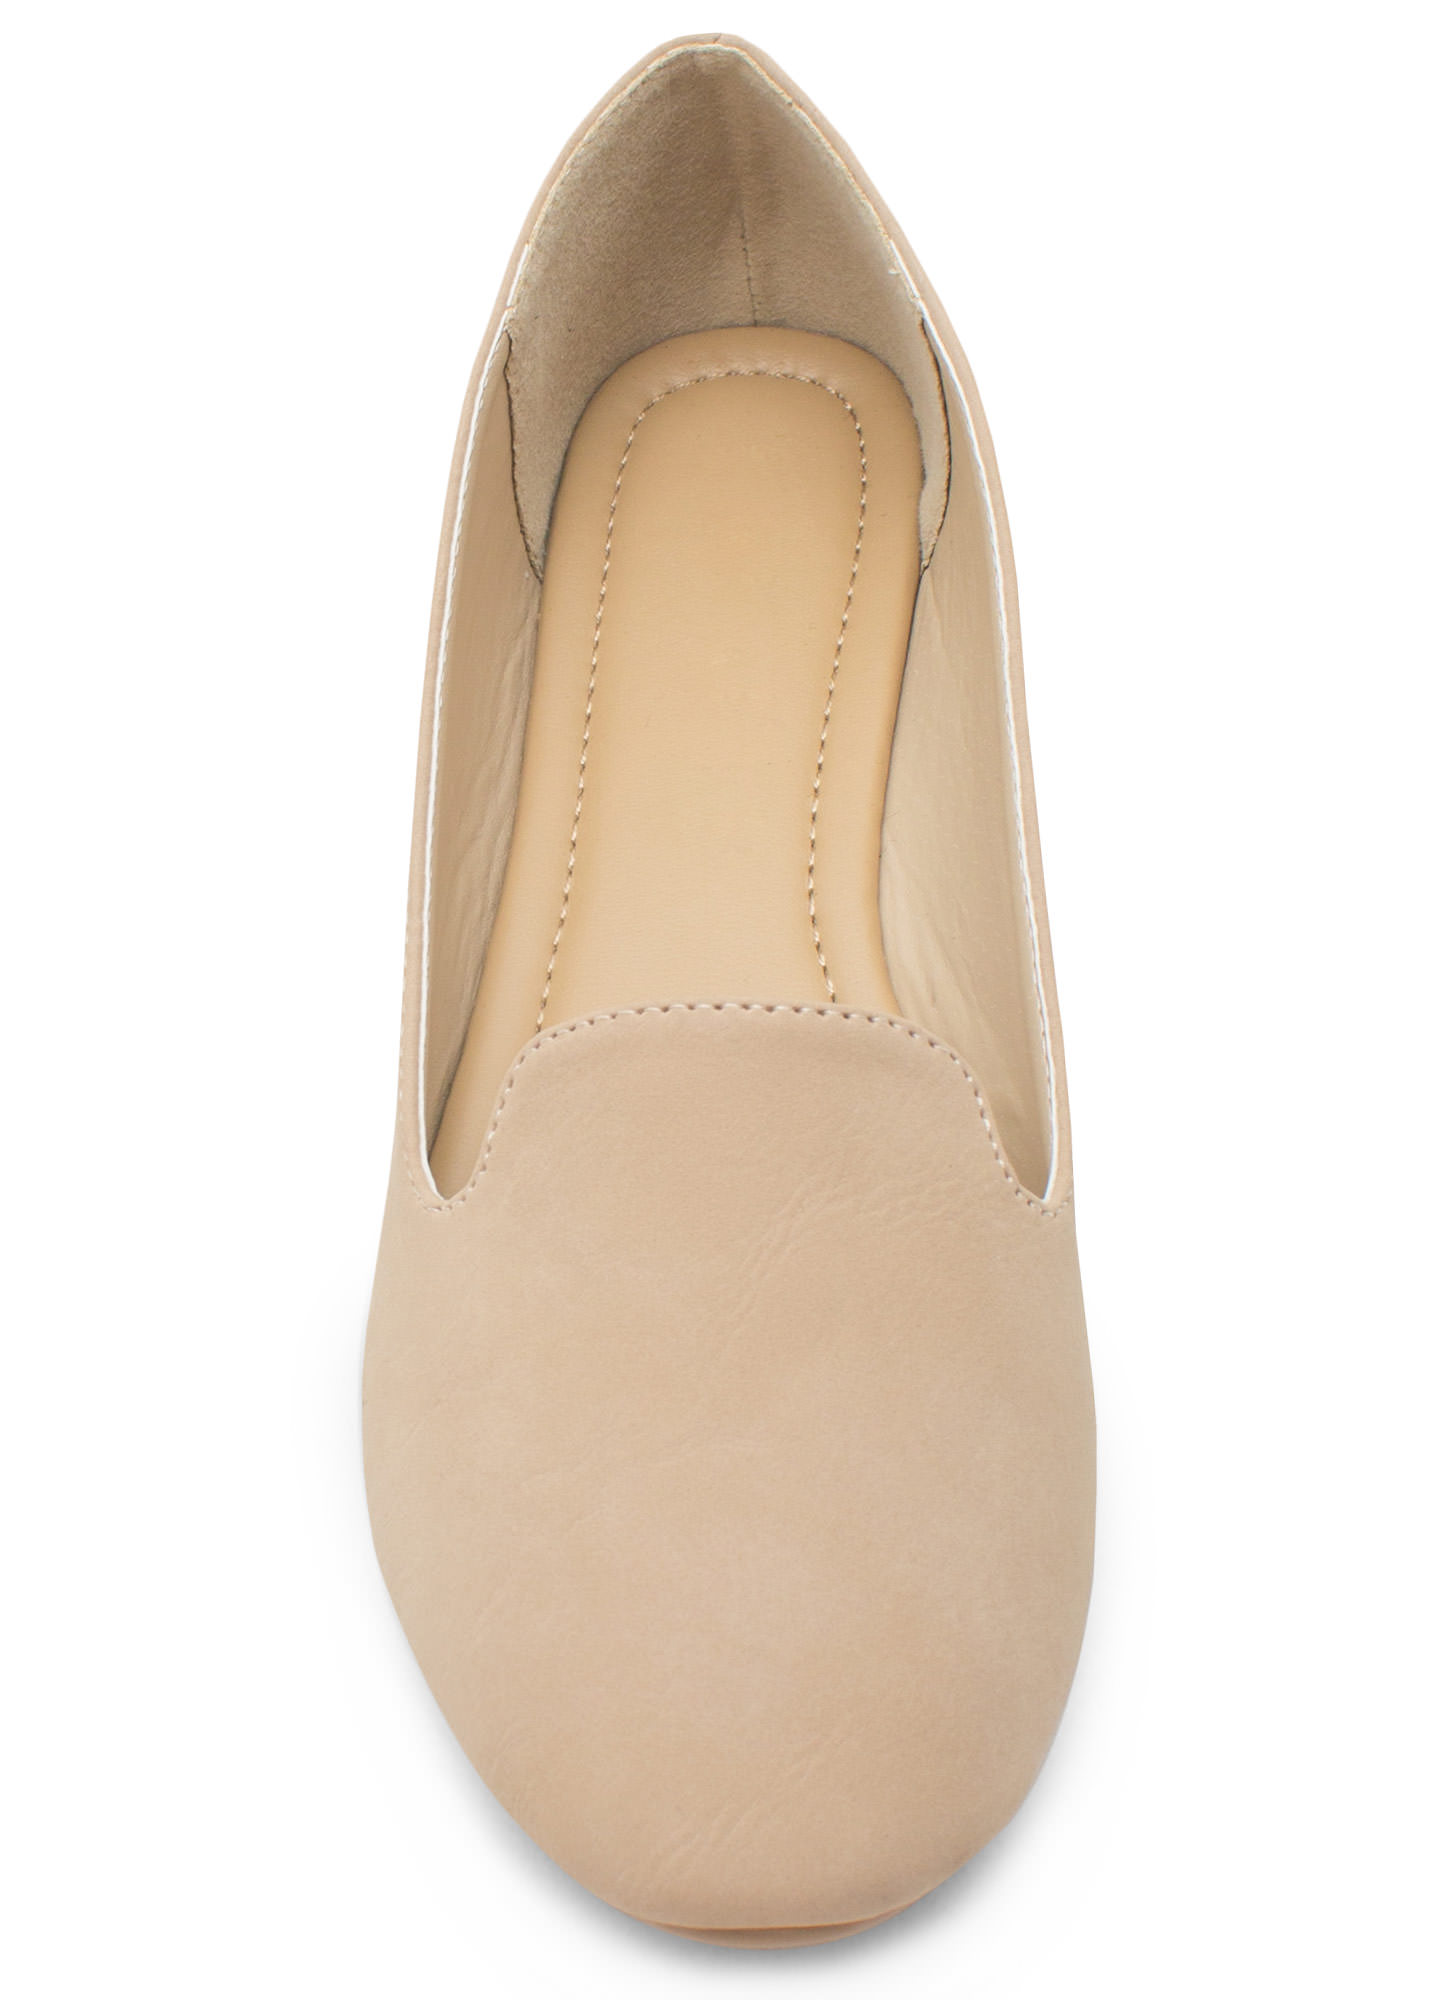 Go Plain Faux Nubuck Smoking Flat NATURAL